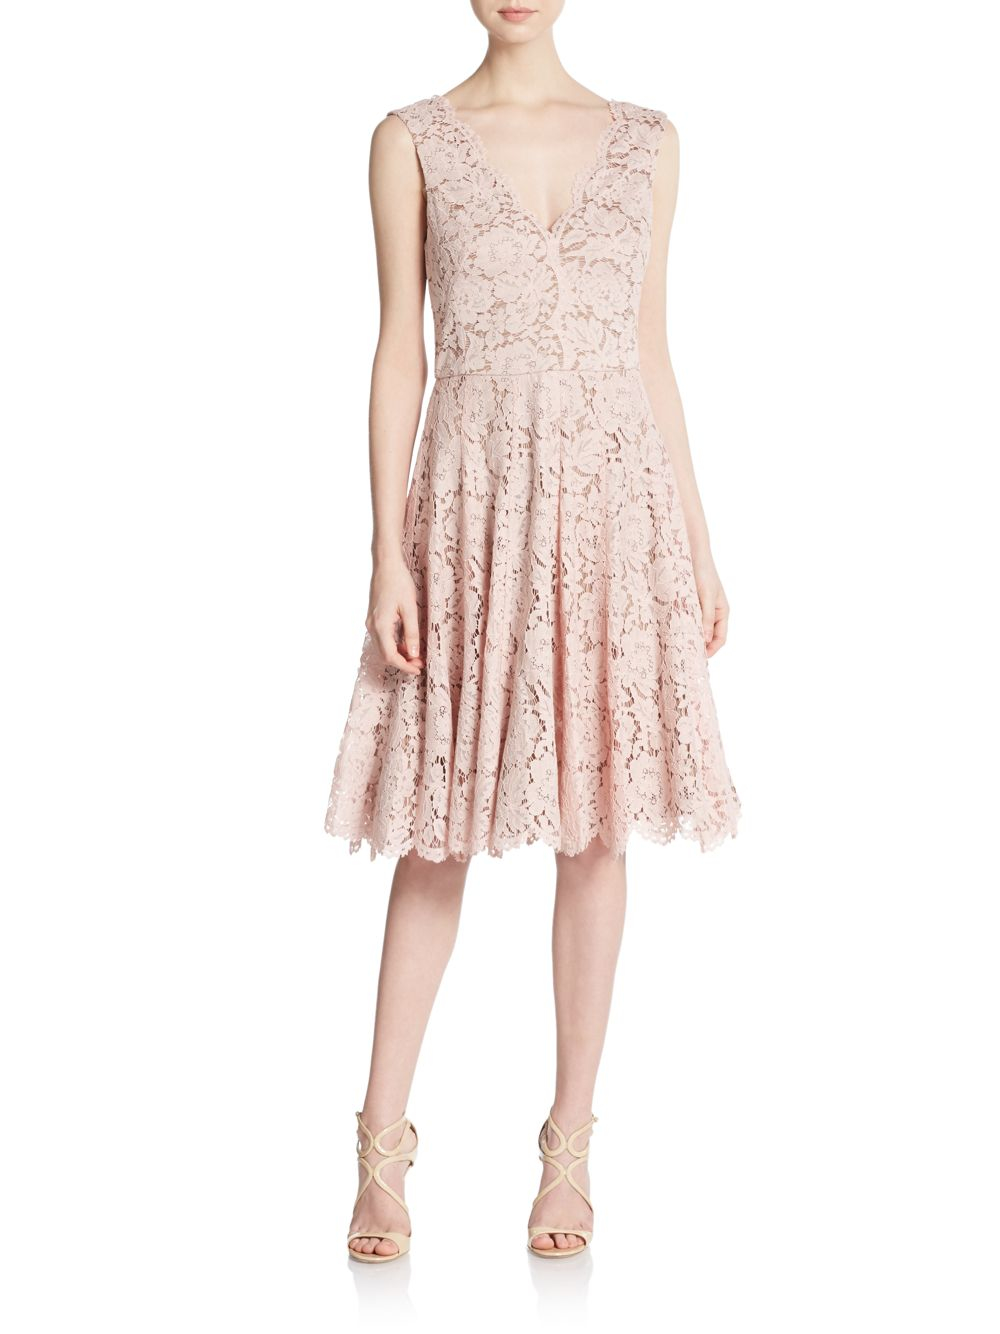 999ba97bb1322 Vera Wang Scarlet Lace A-line Dress in Pink - Lyst